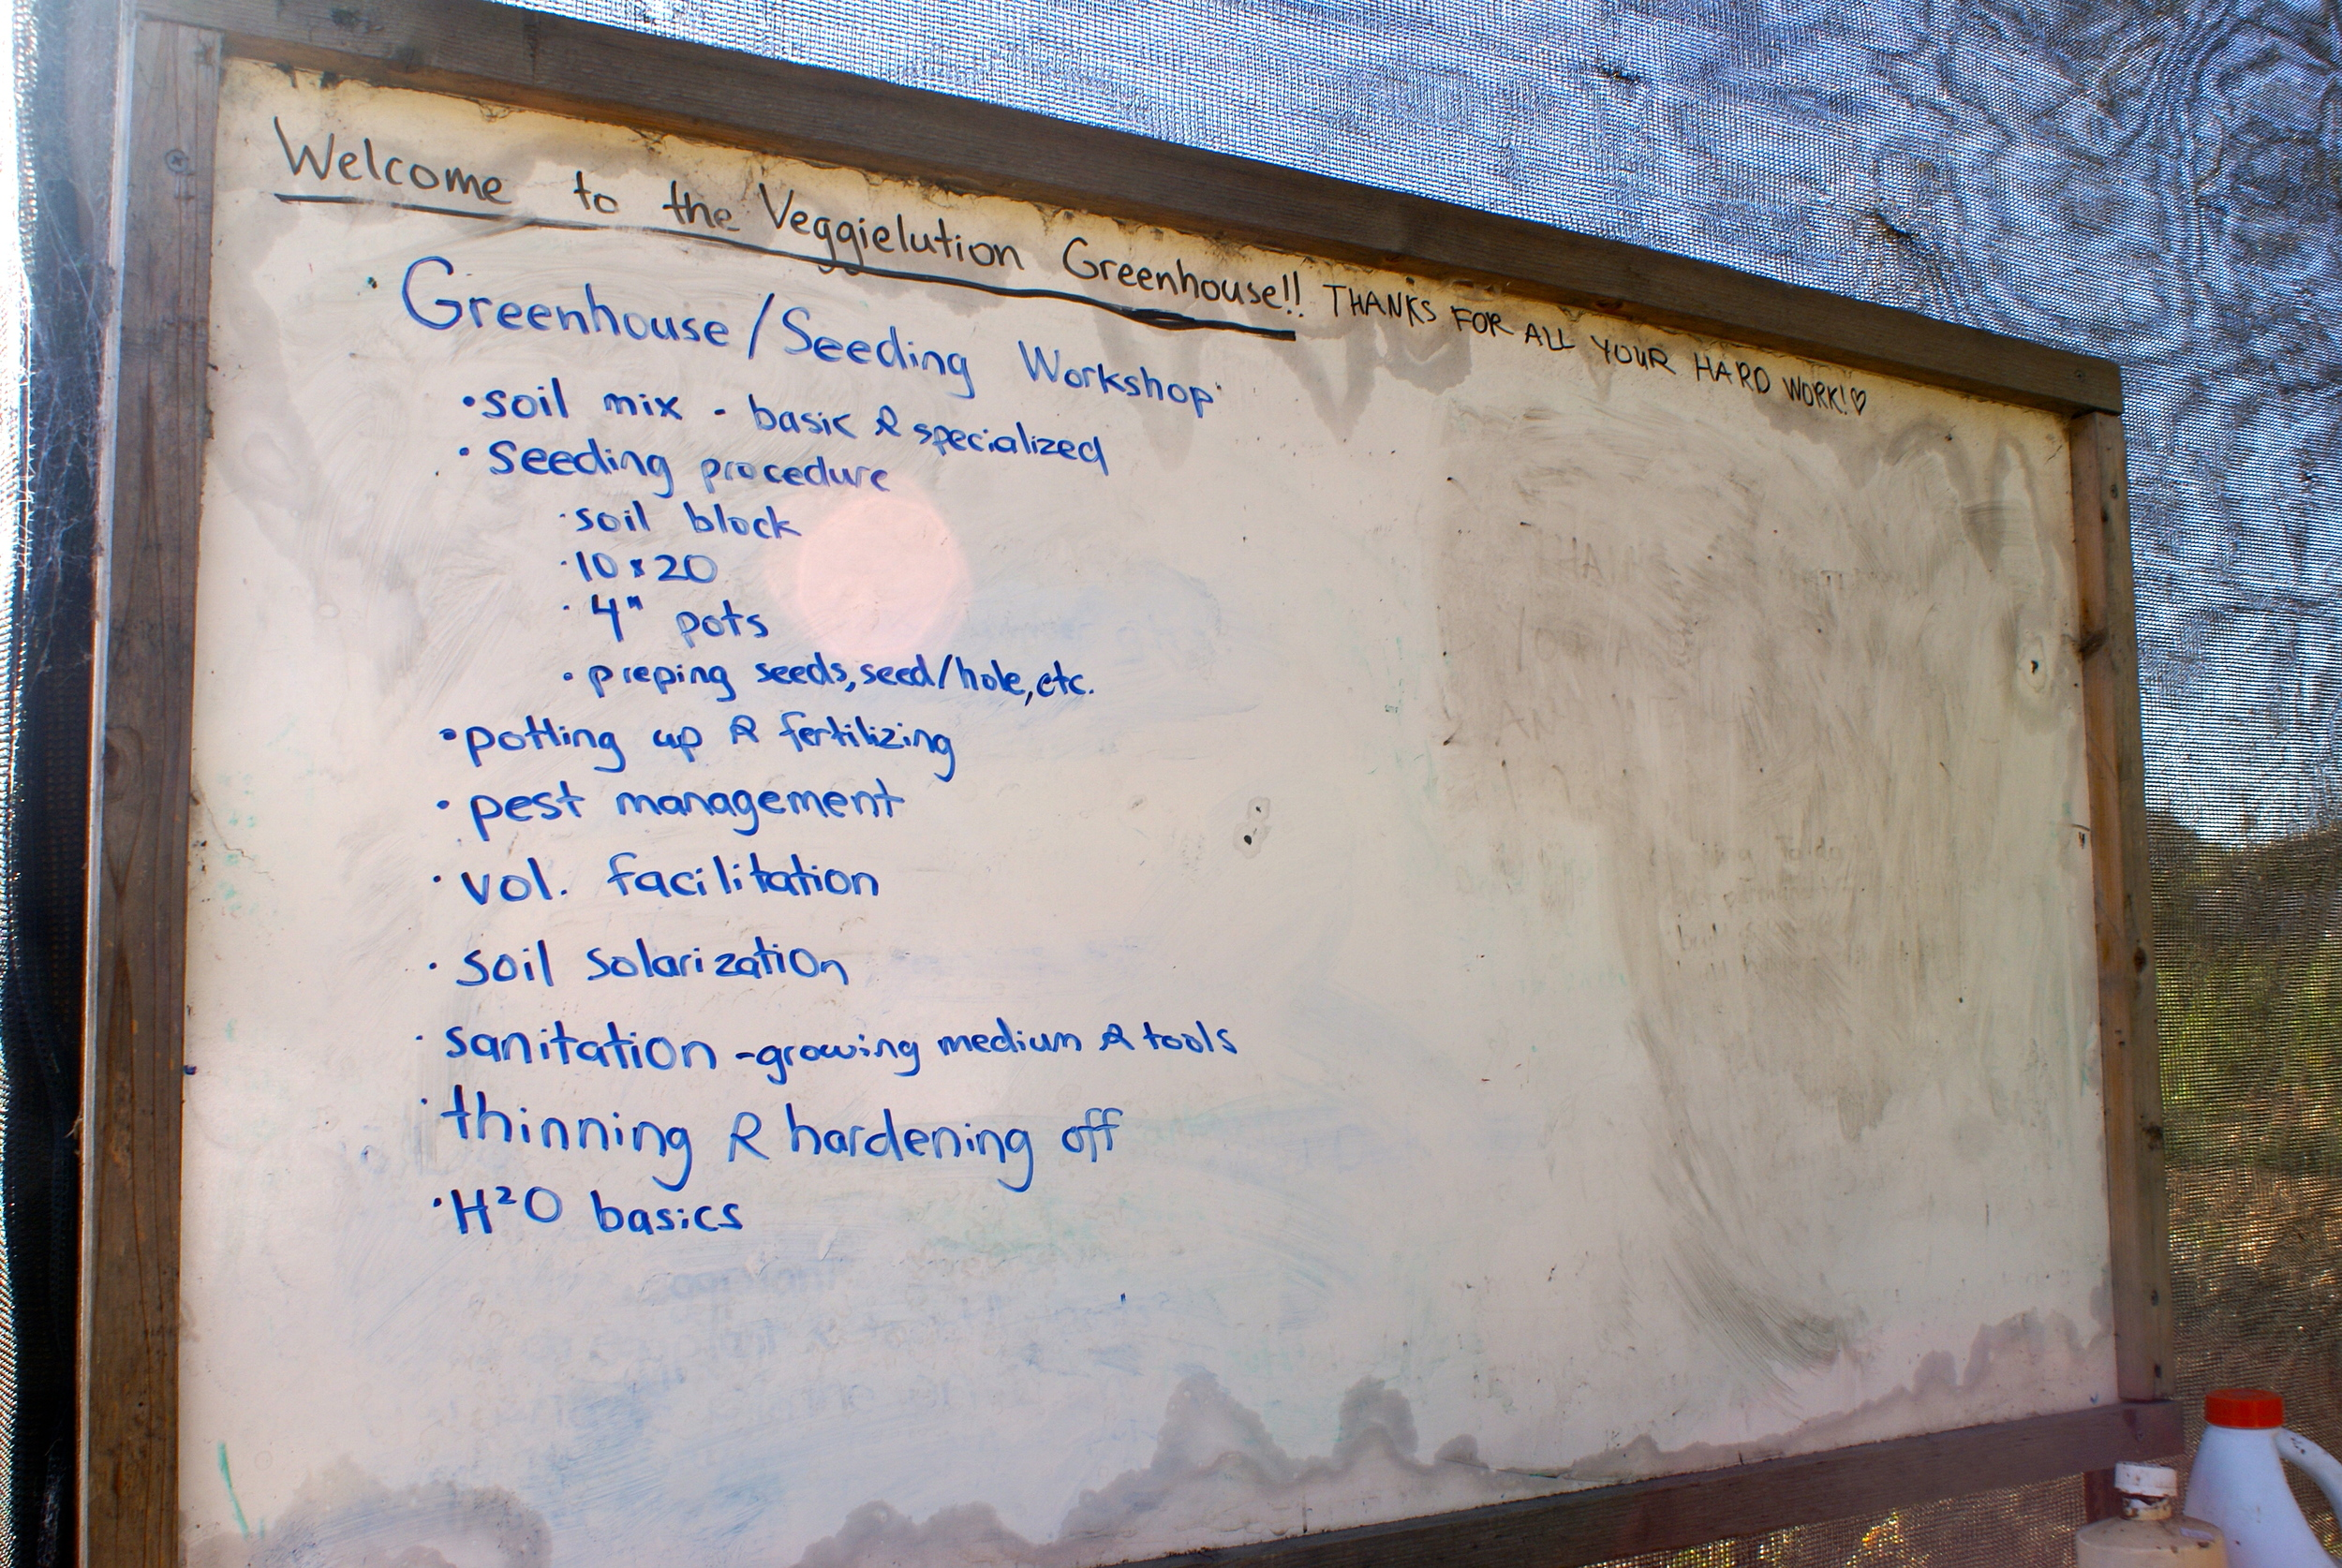 Turning to the whiteboard to explain the processes of the greenhouse.